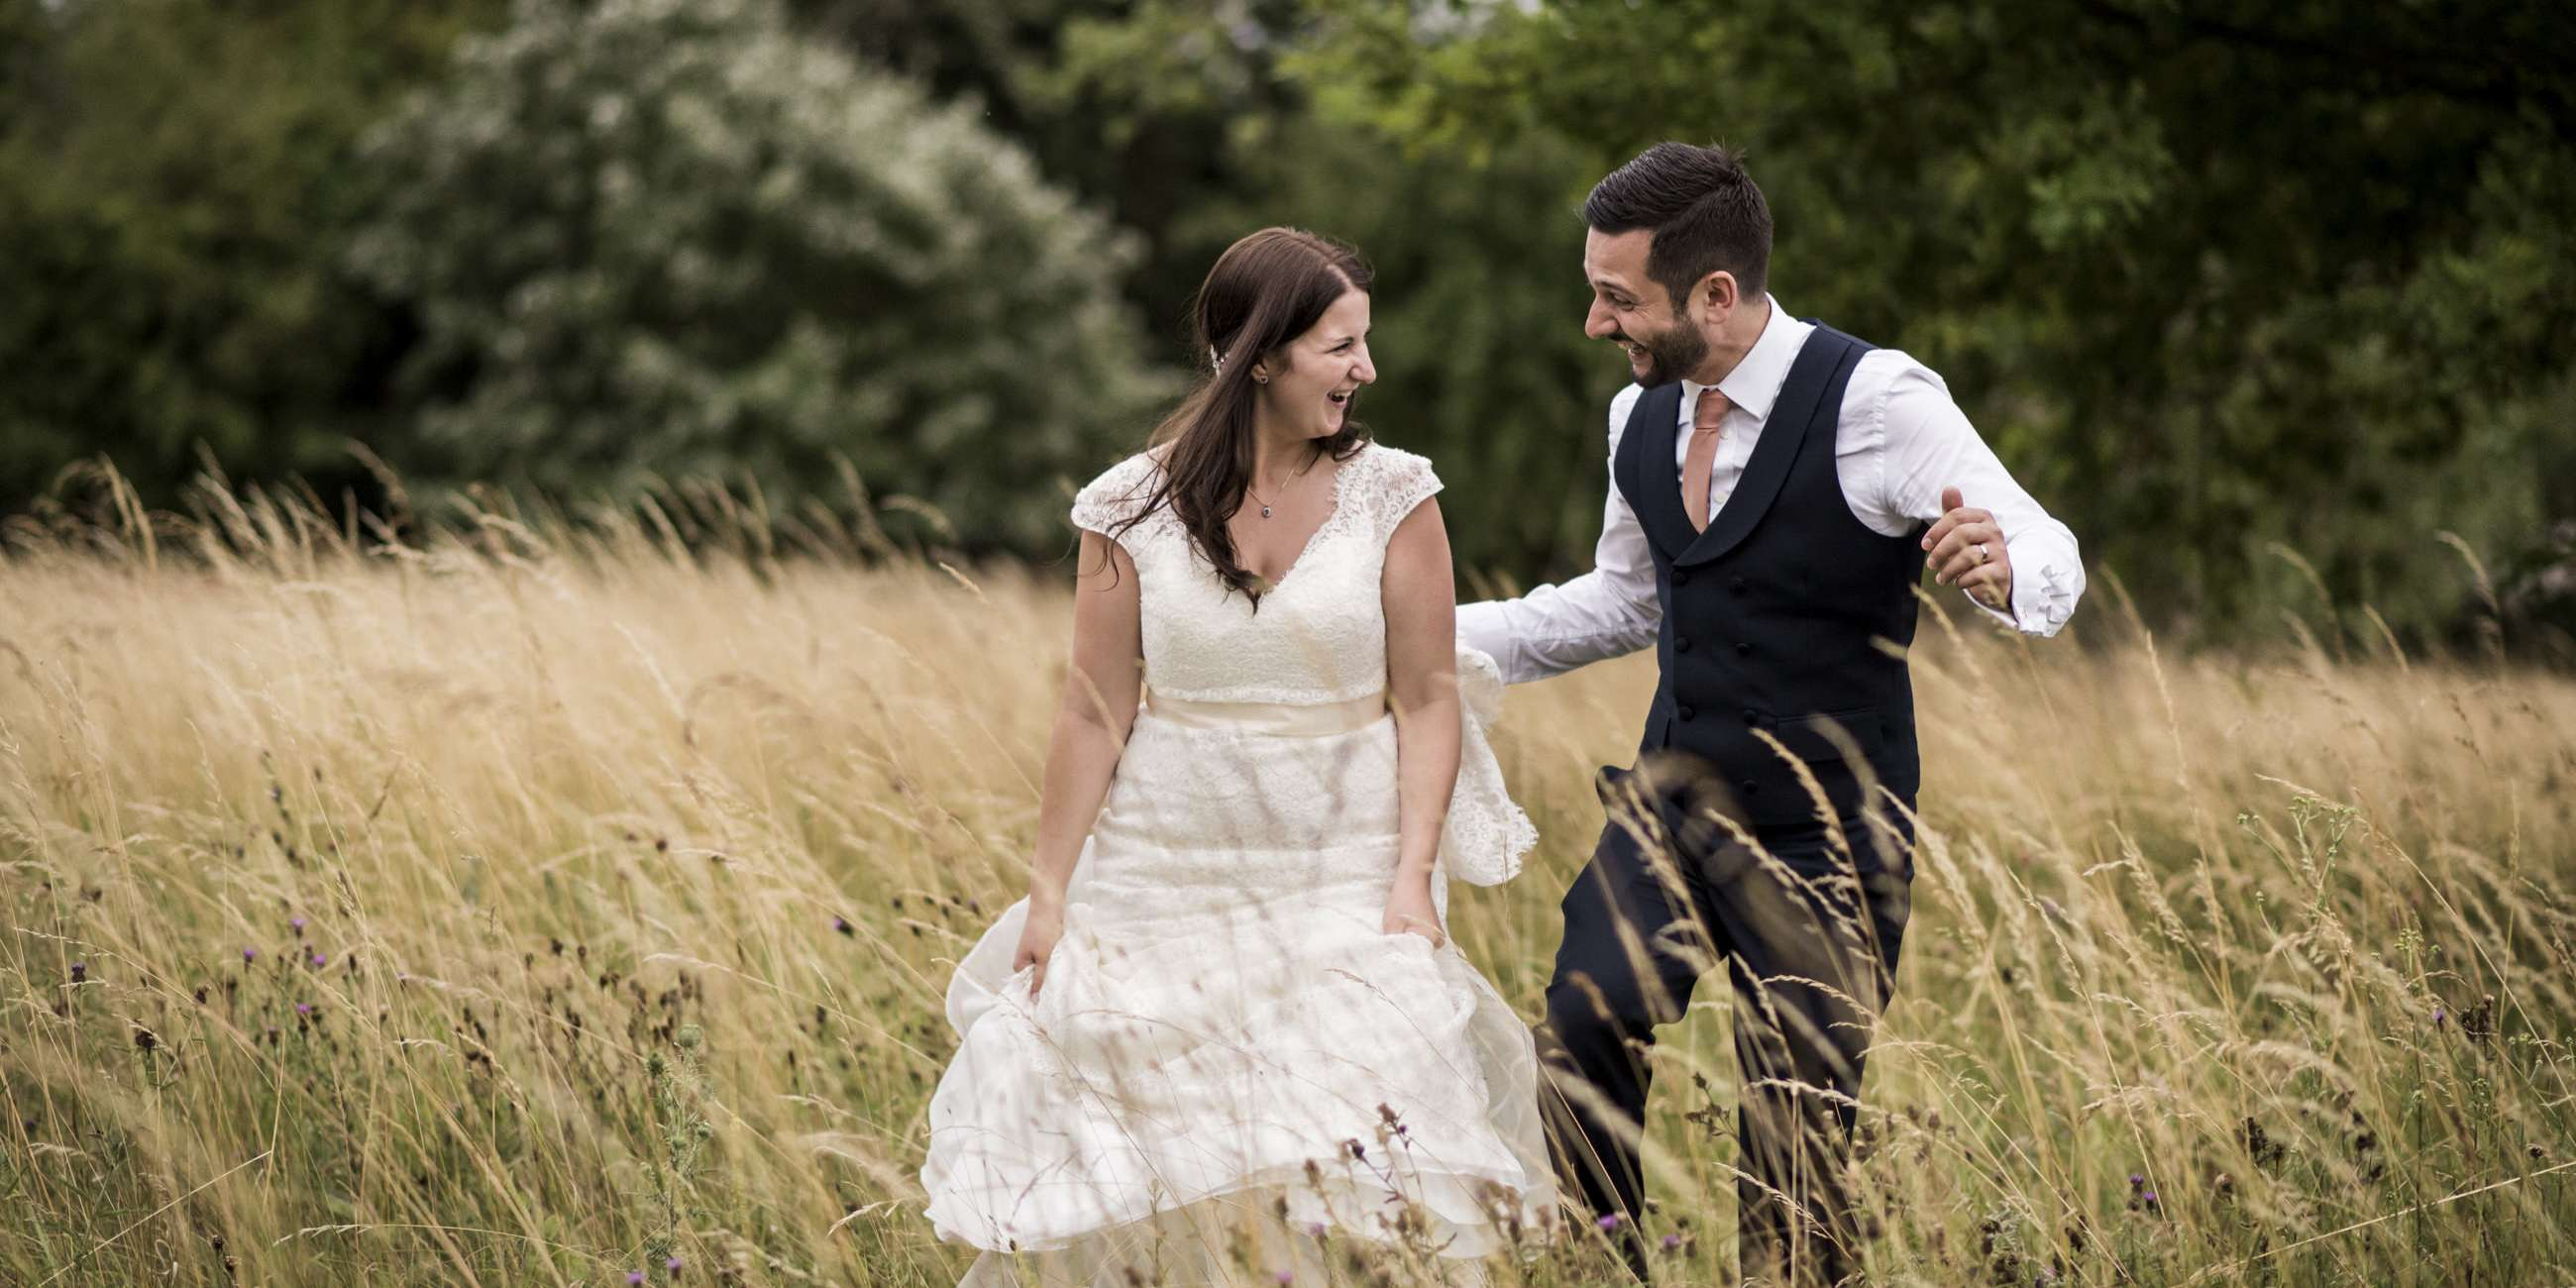 Outdoor marquee wedding photography near Maidenhead, Anna Adam Wedding blog